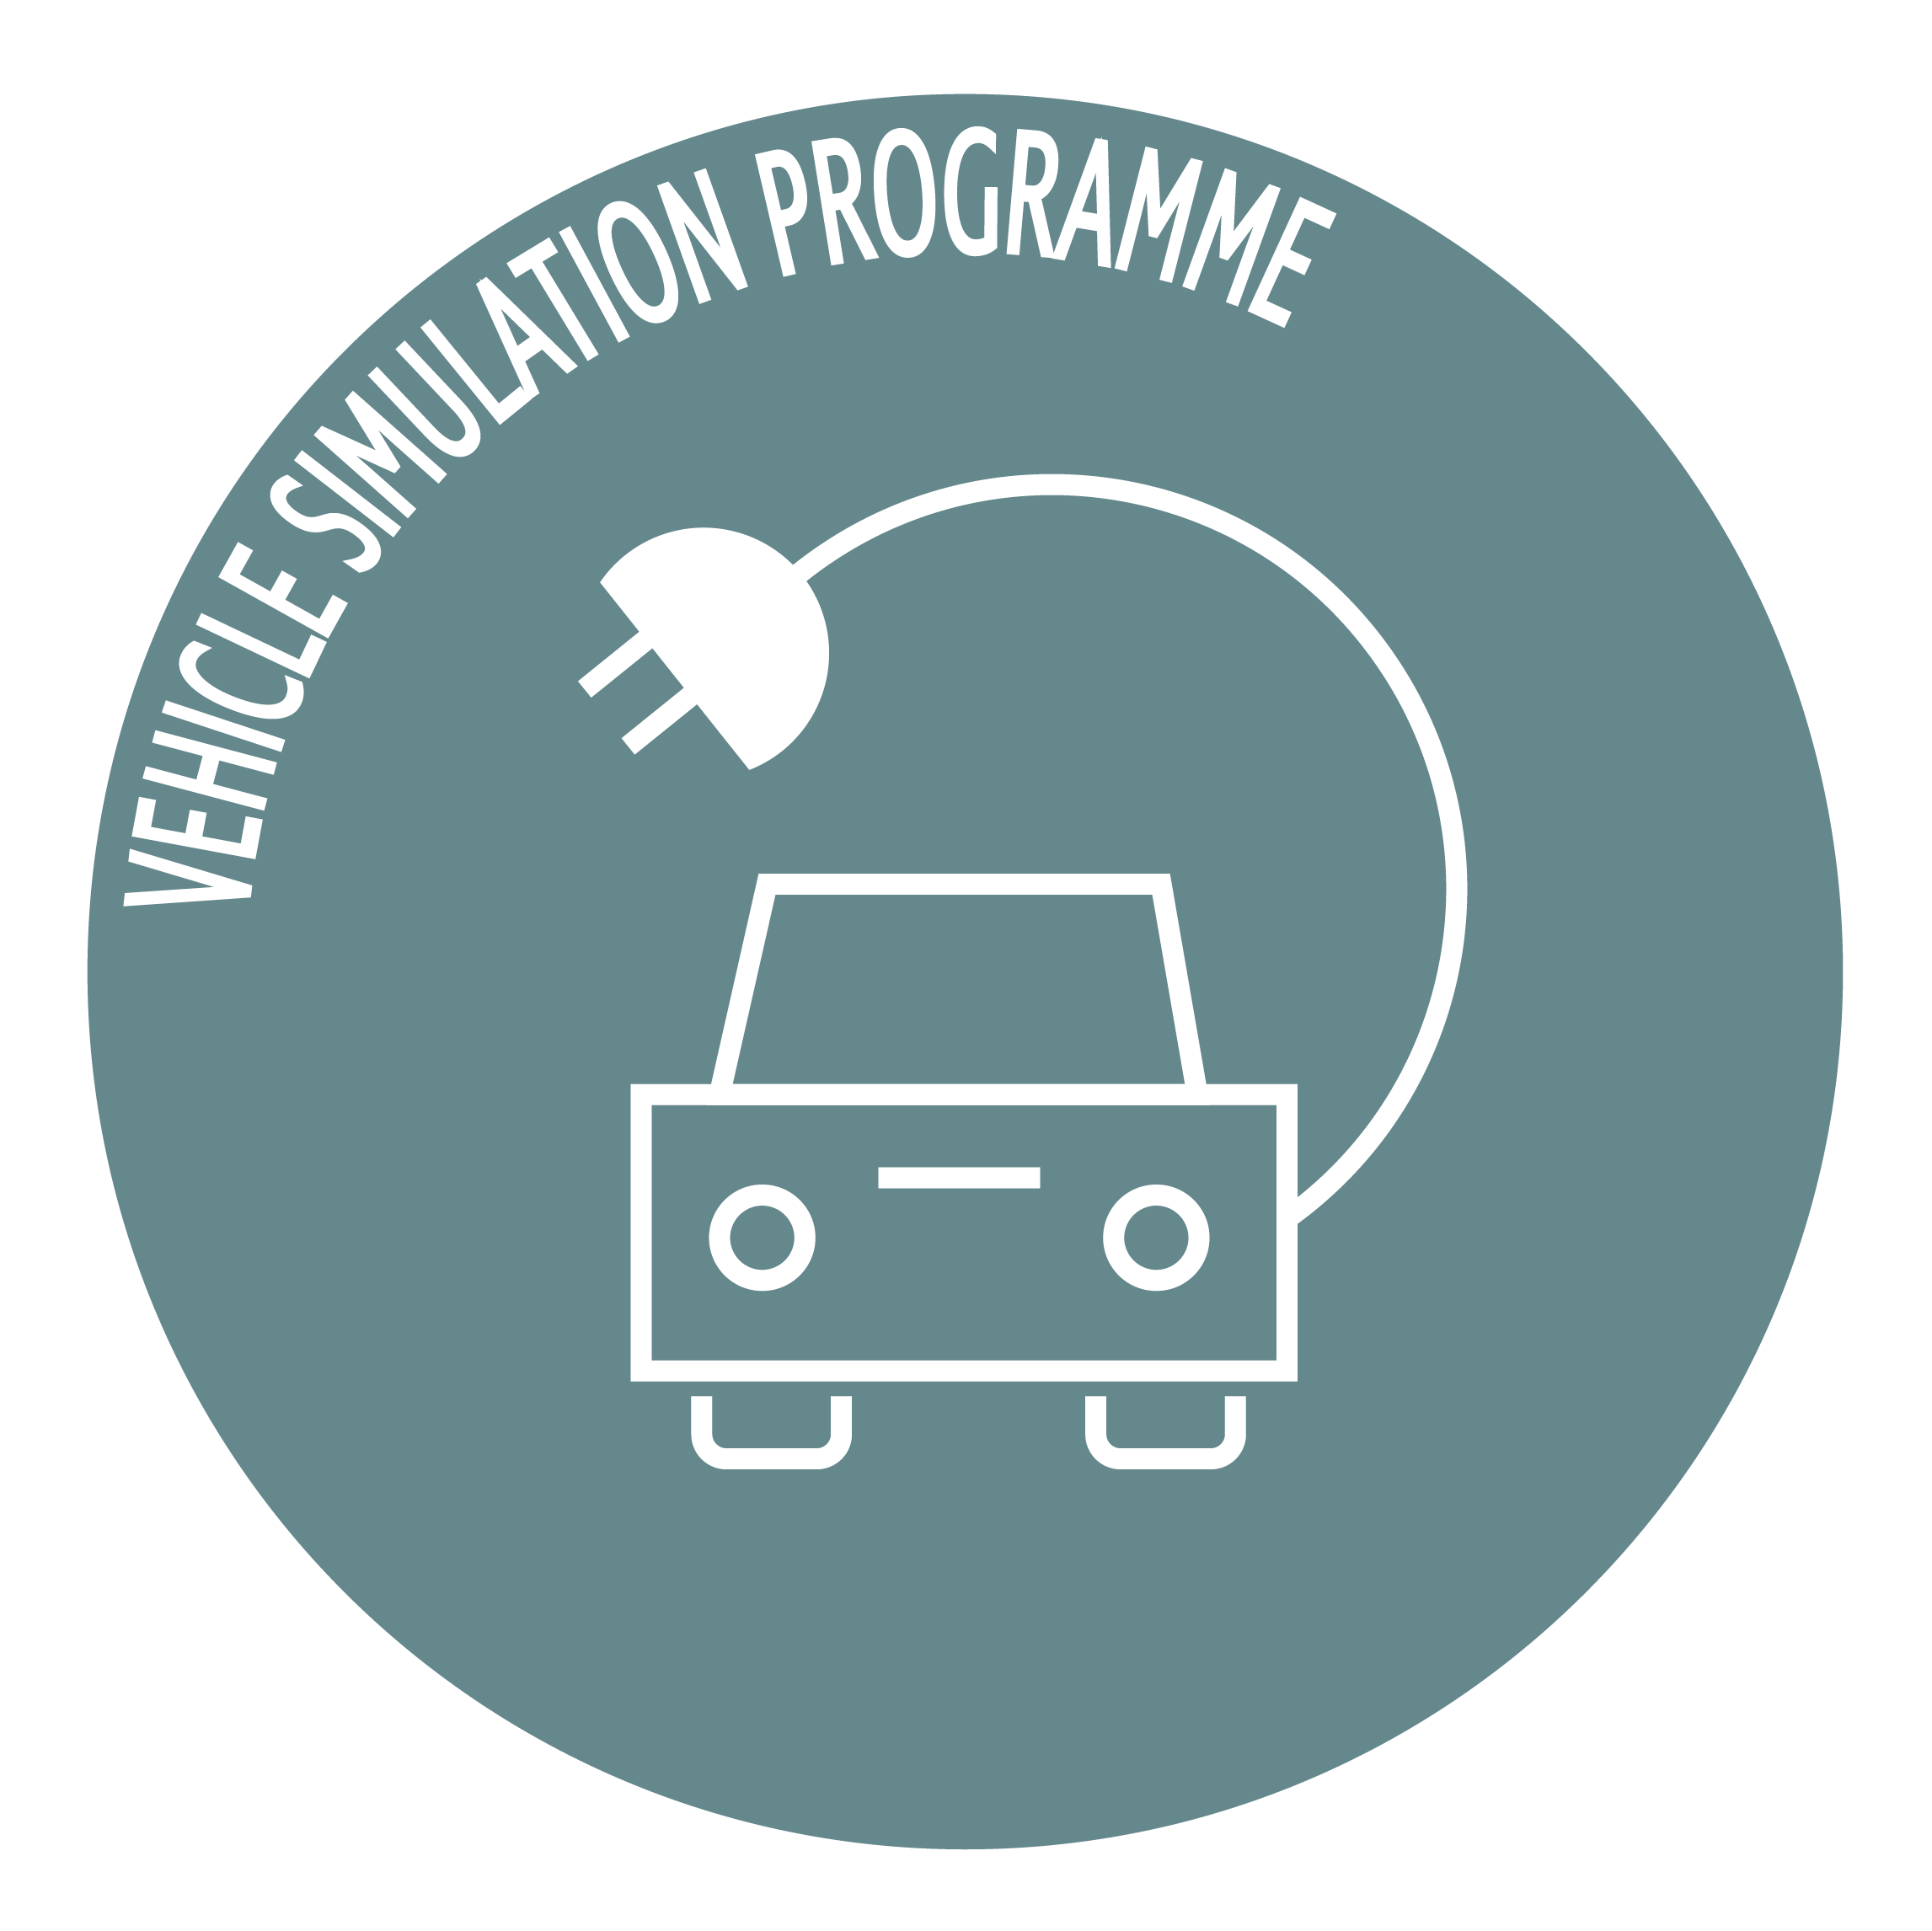 vehicle simulation programme icon